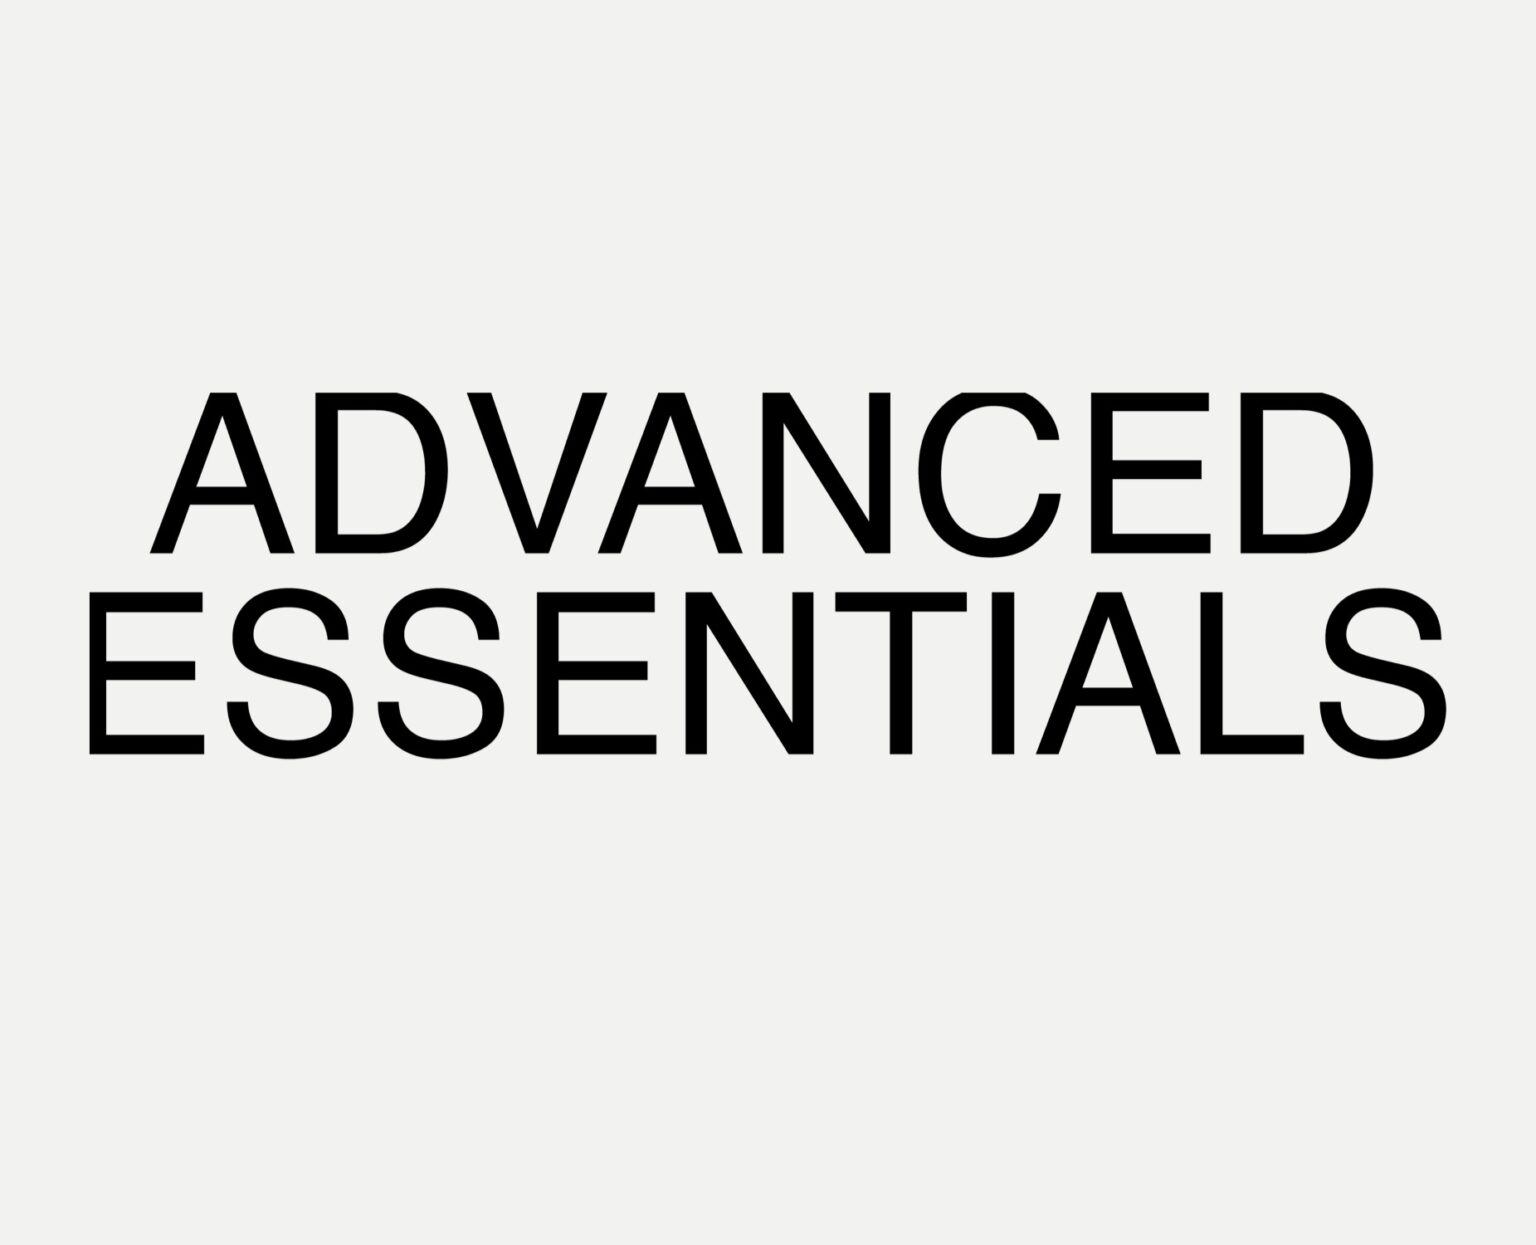 Advanced essentials fathers day gift guide